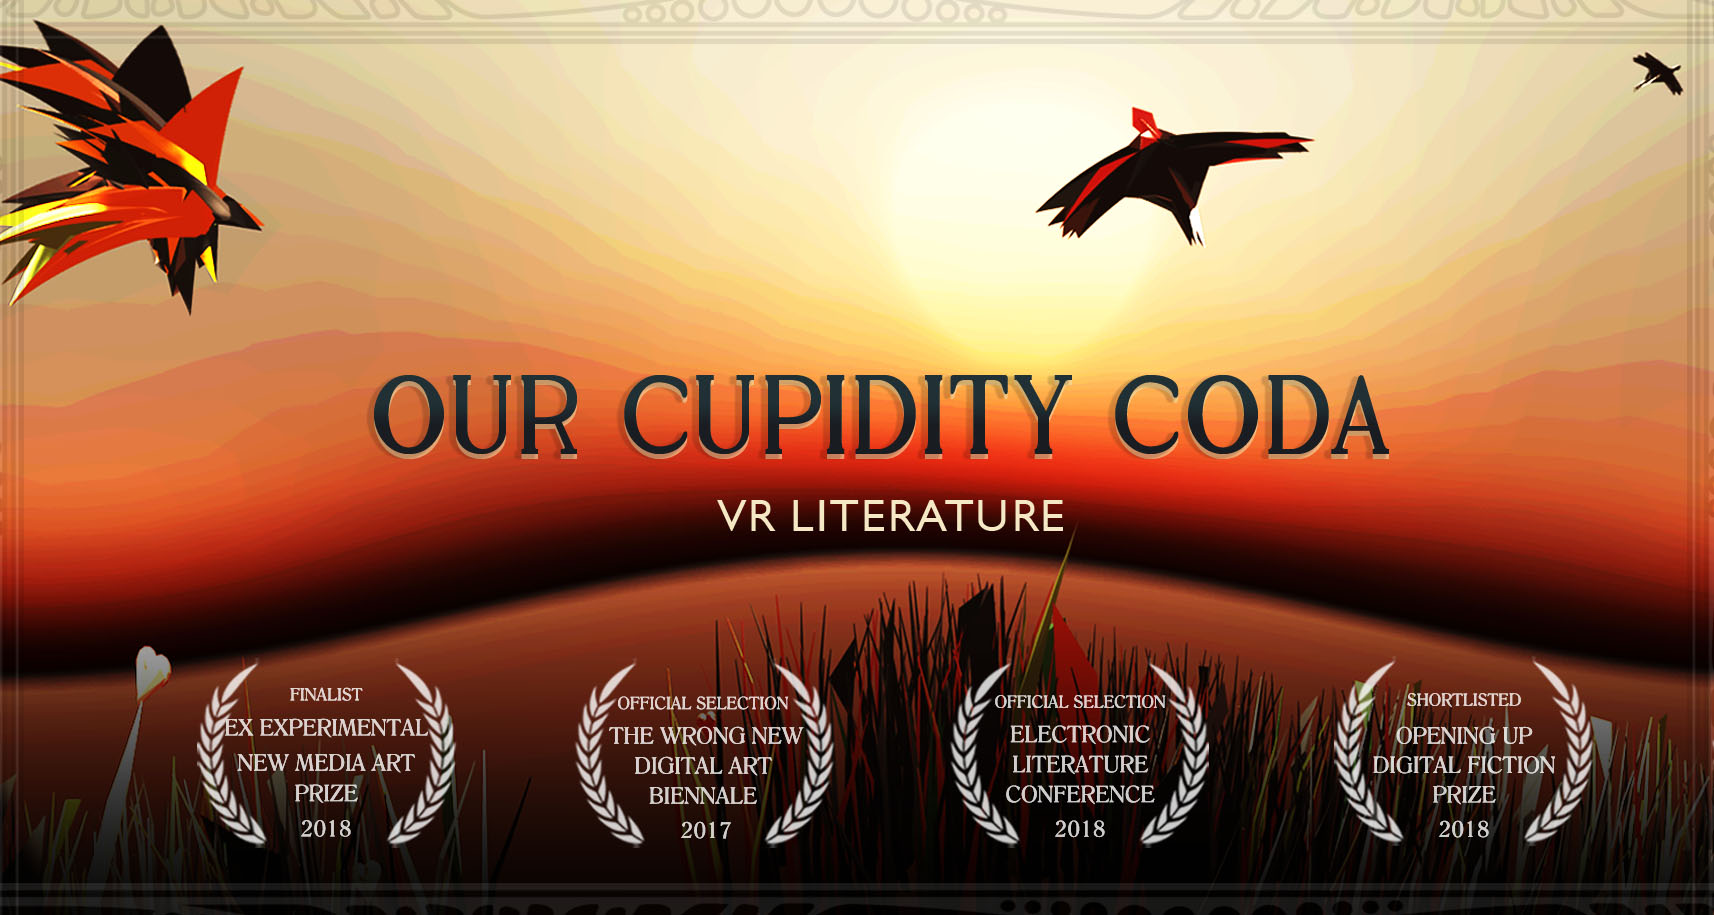 Our Cupidity Coda front cover